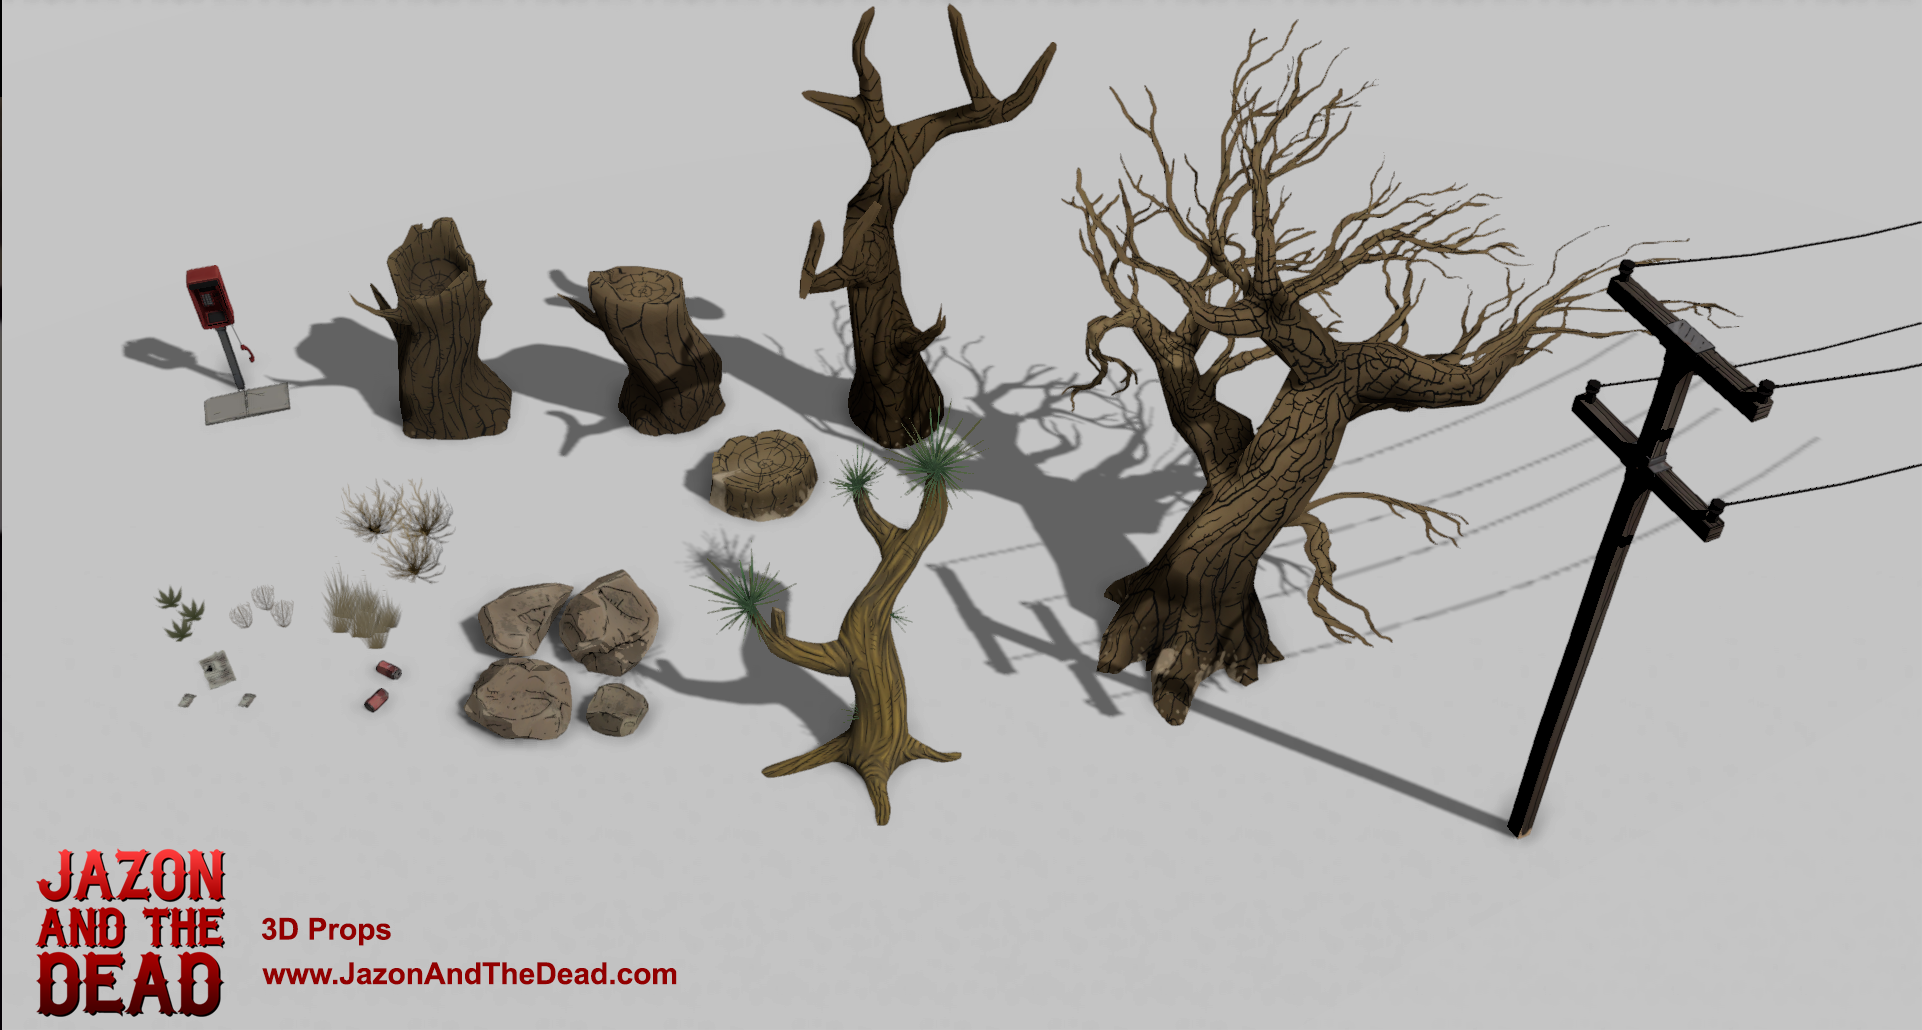 3D Props for Jazon and the Dead